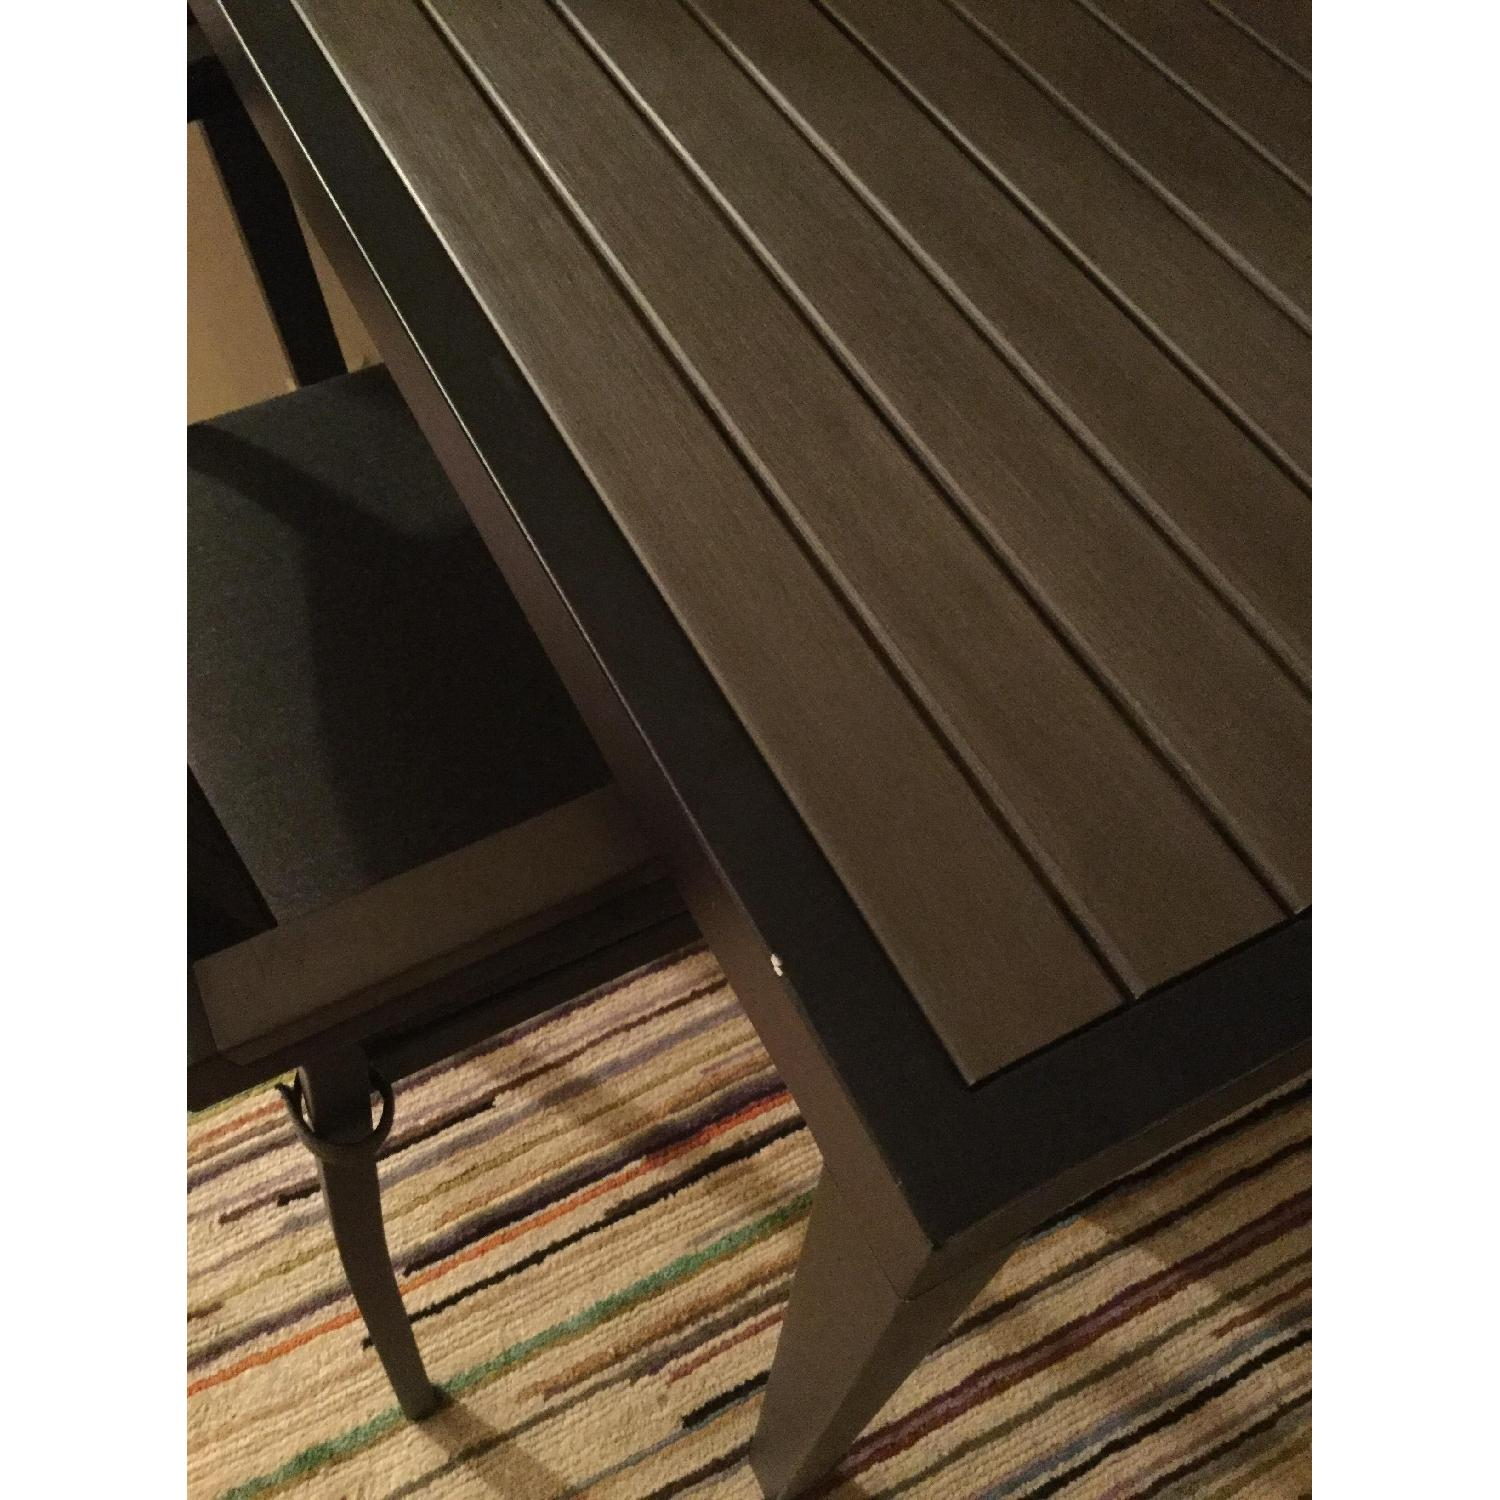 Crate & Barrel Alfresco Home Outdoor Dining Table w/ 2 Chairs - image-5